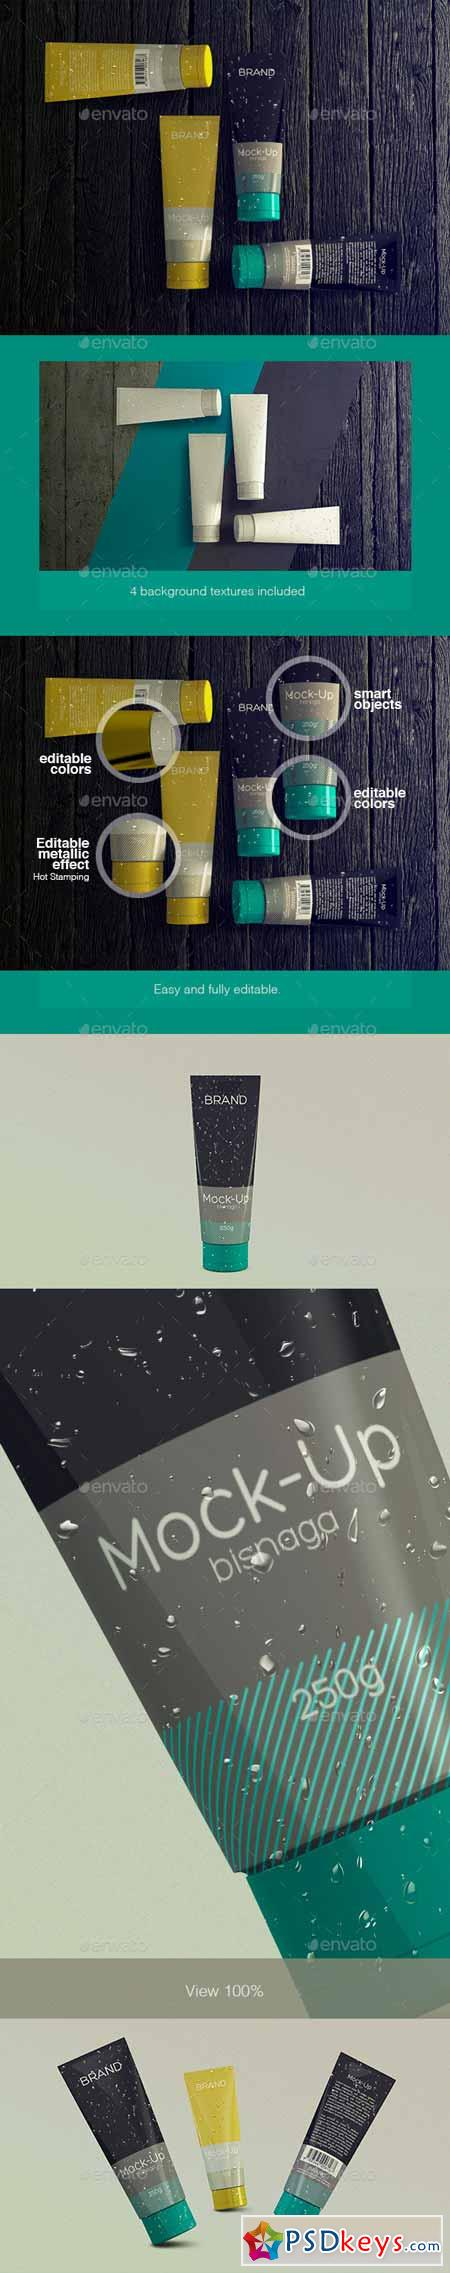 Realistic Cosmetics Packaging - Mock-up 11456642